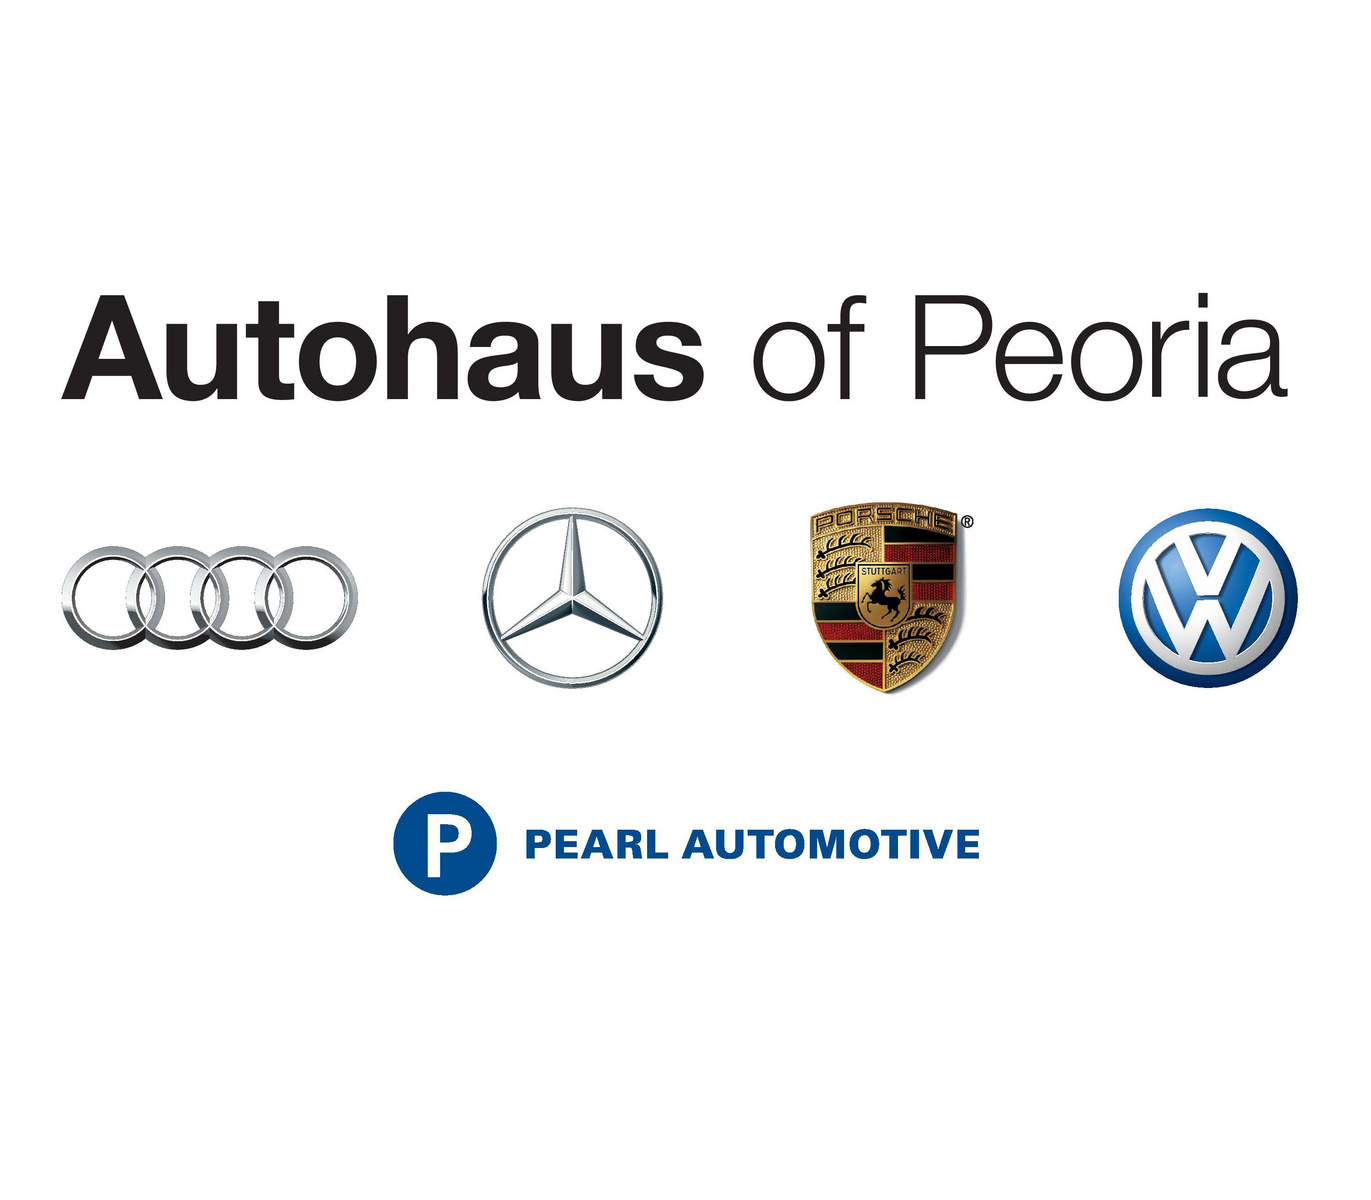 Autohaus of Peoria - Peoria, IL: Read Consumer reviews, Browse Used and New Cars for Sale